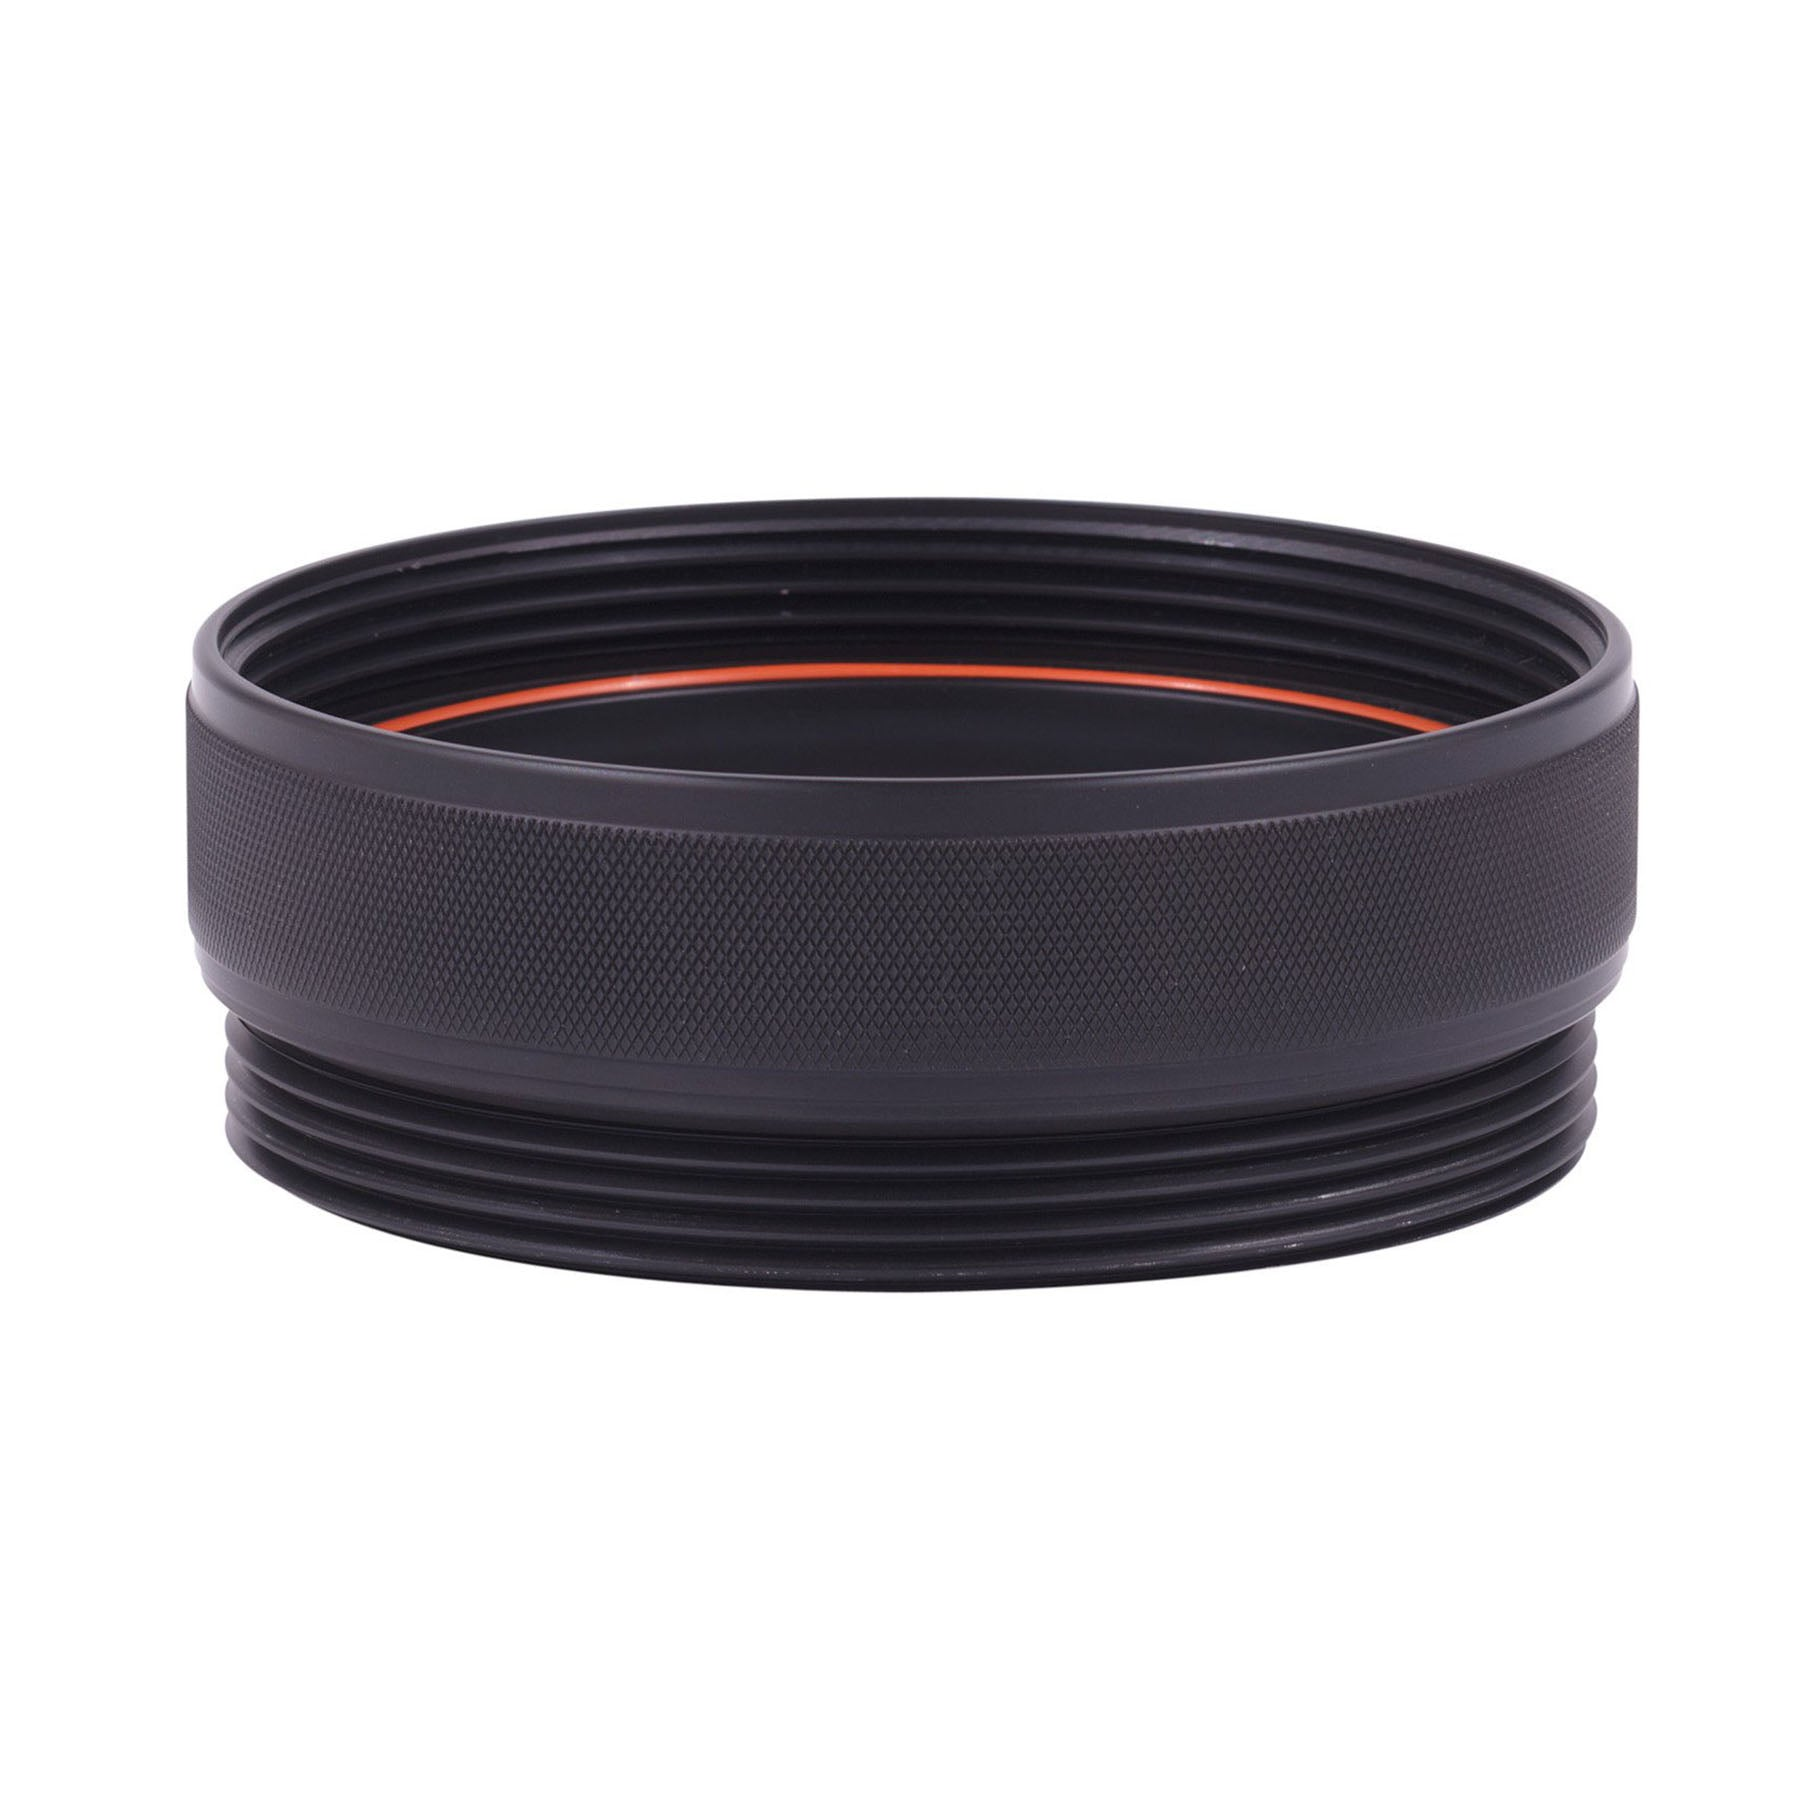 AquaTech P-30 Lens Port Extension for Underwater Housing